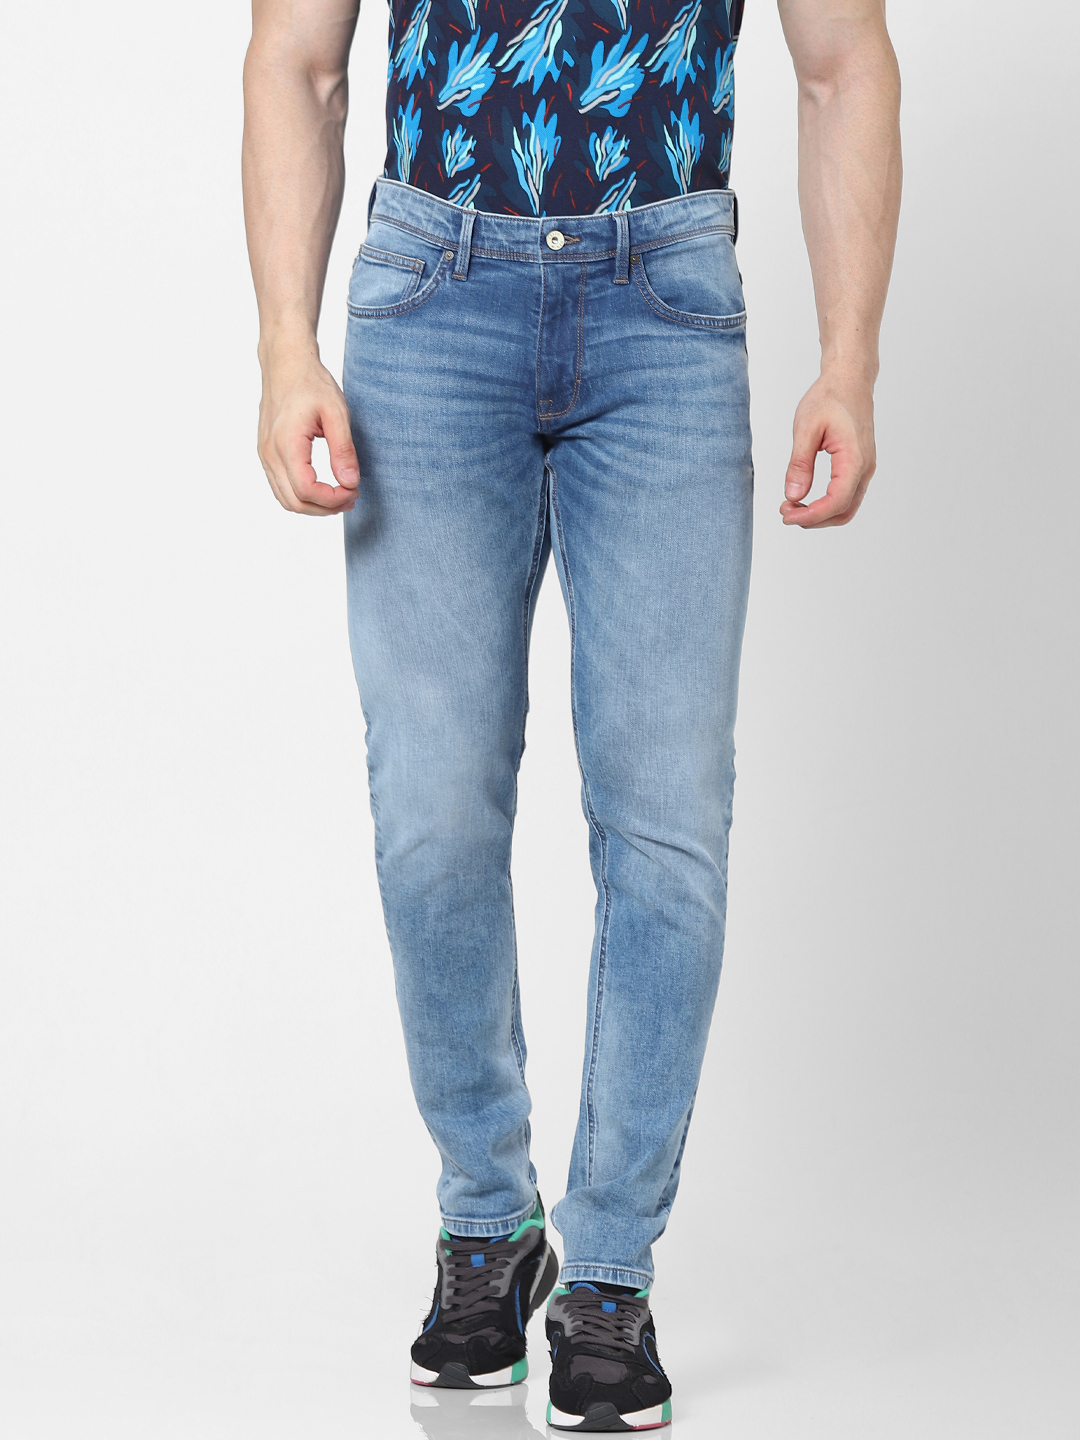 celio   Skinny Fit Double Stone Washed Jeans